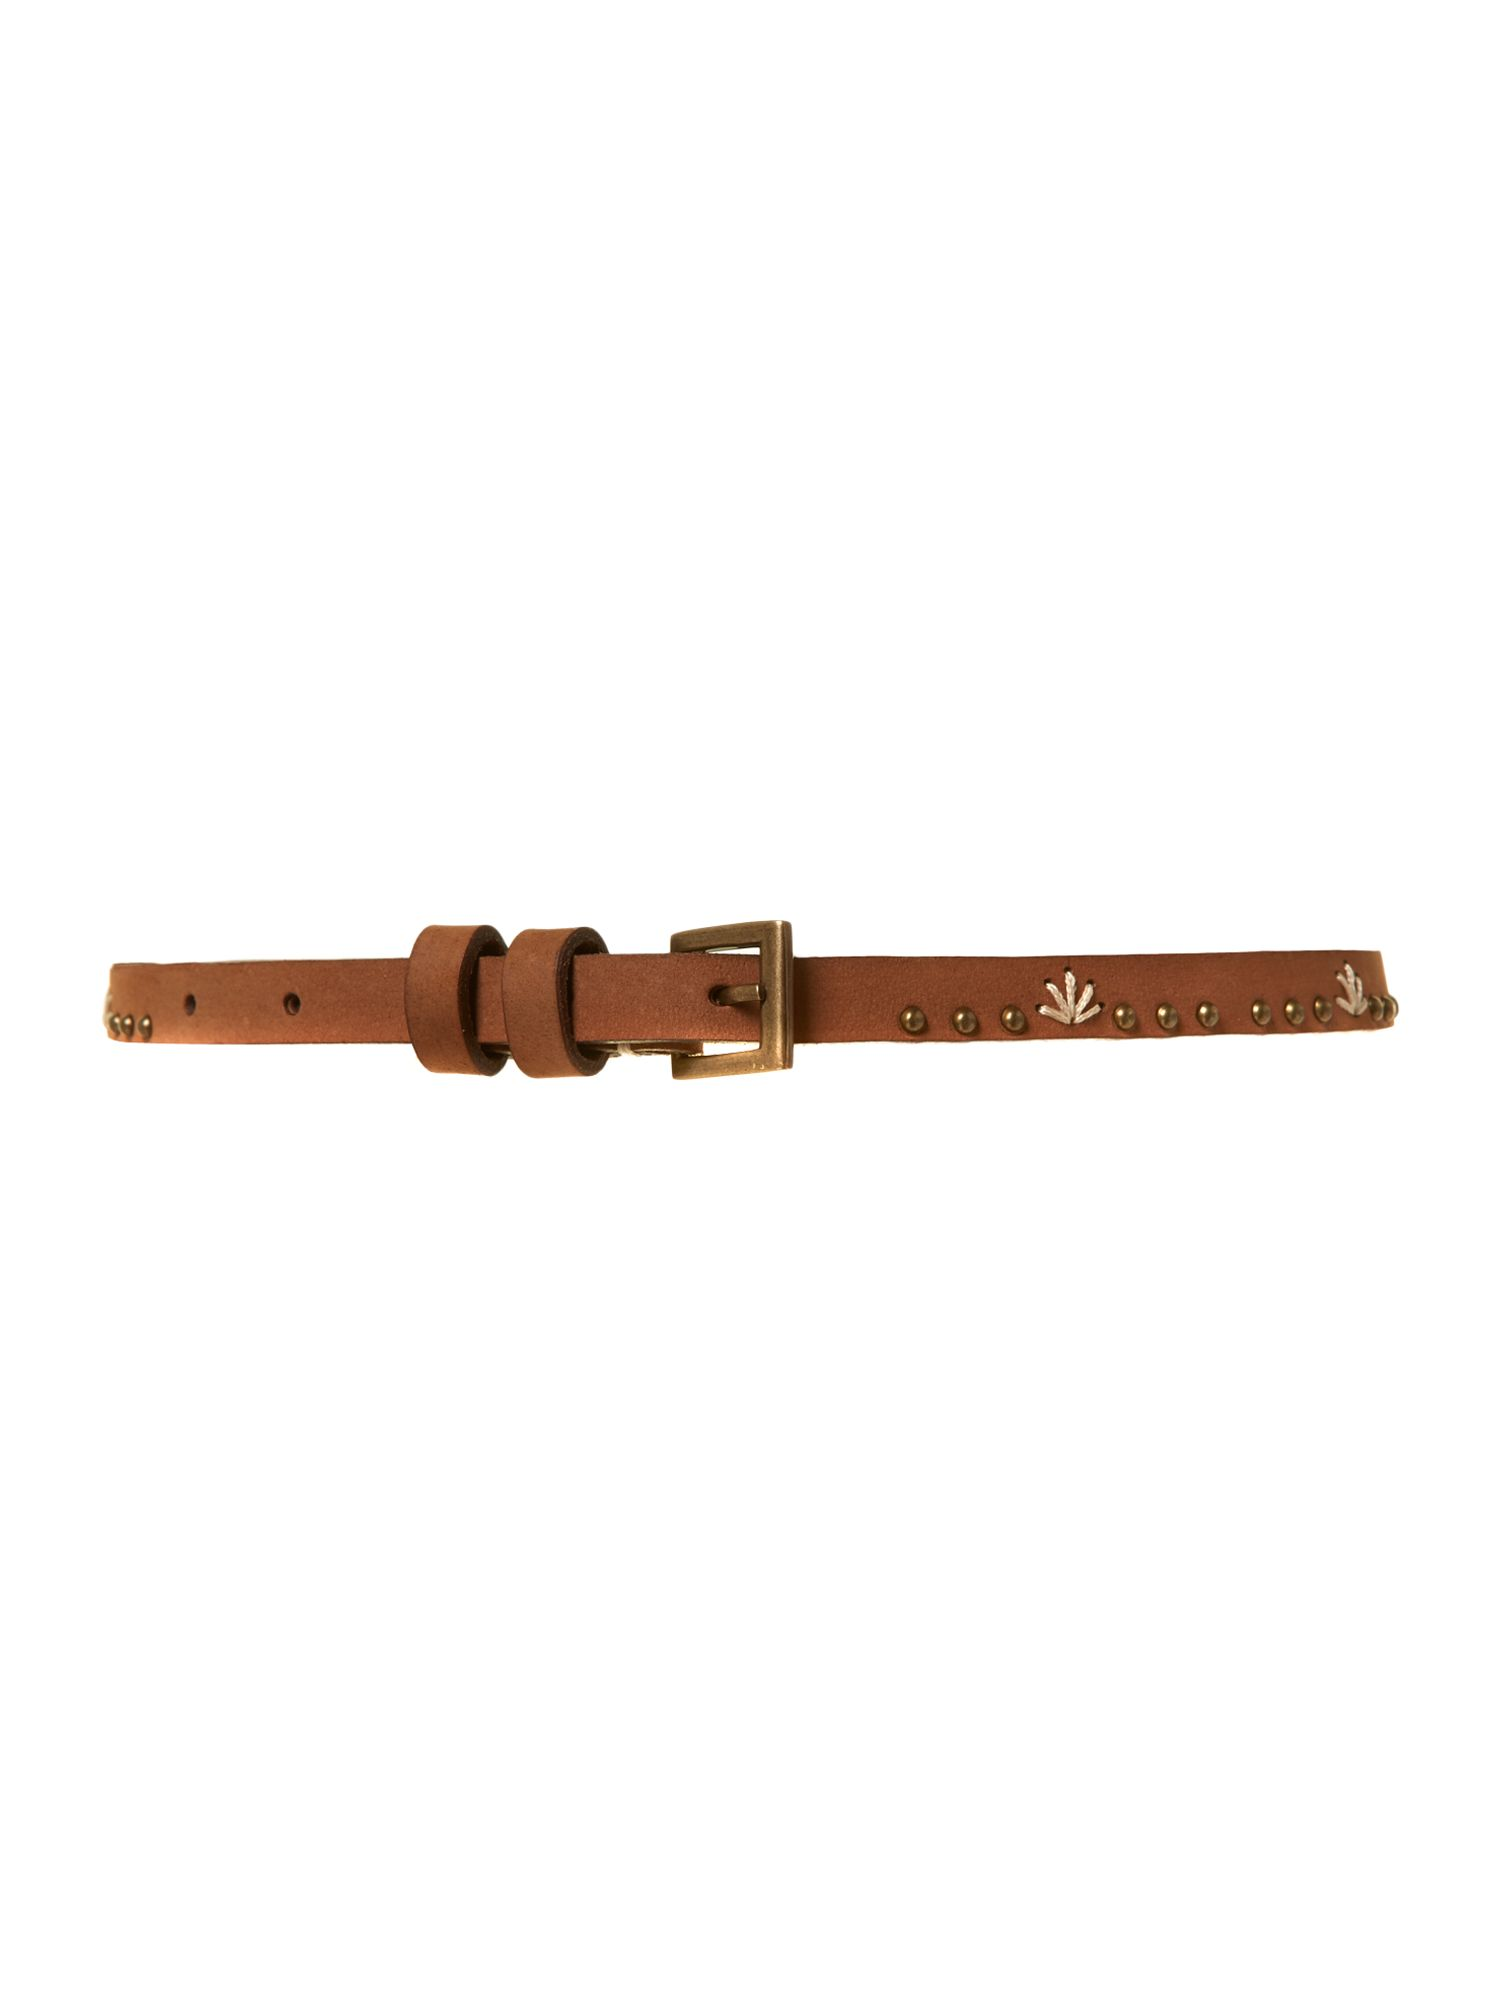 Covered buckle wide waist